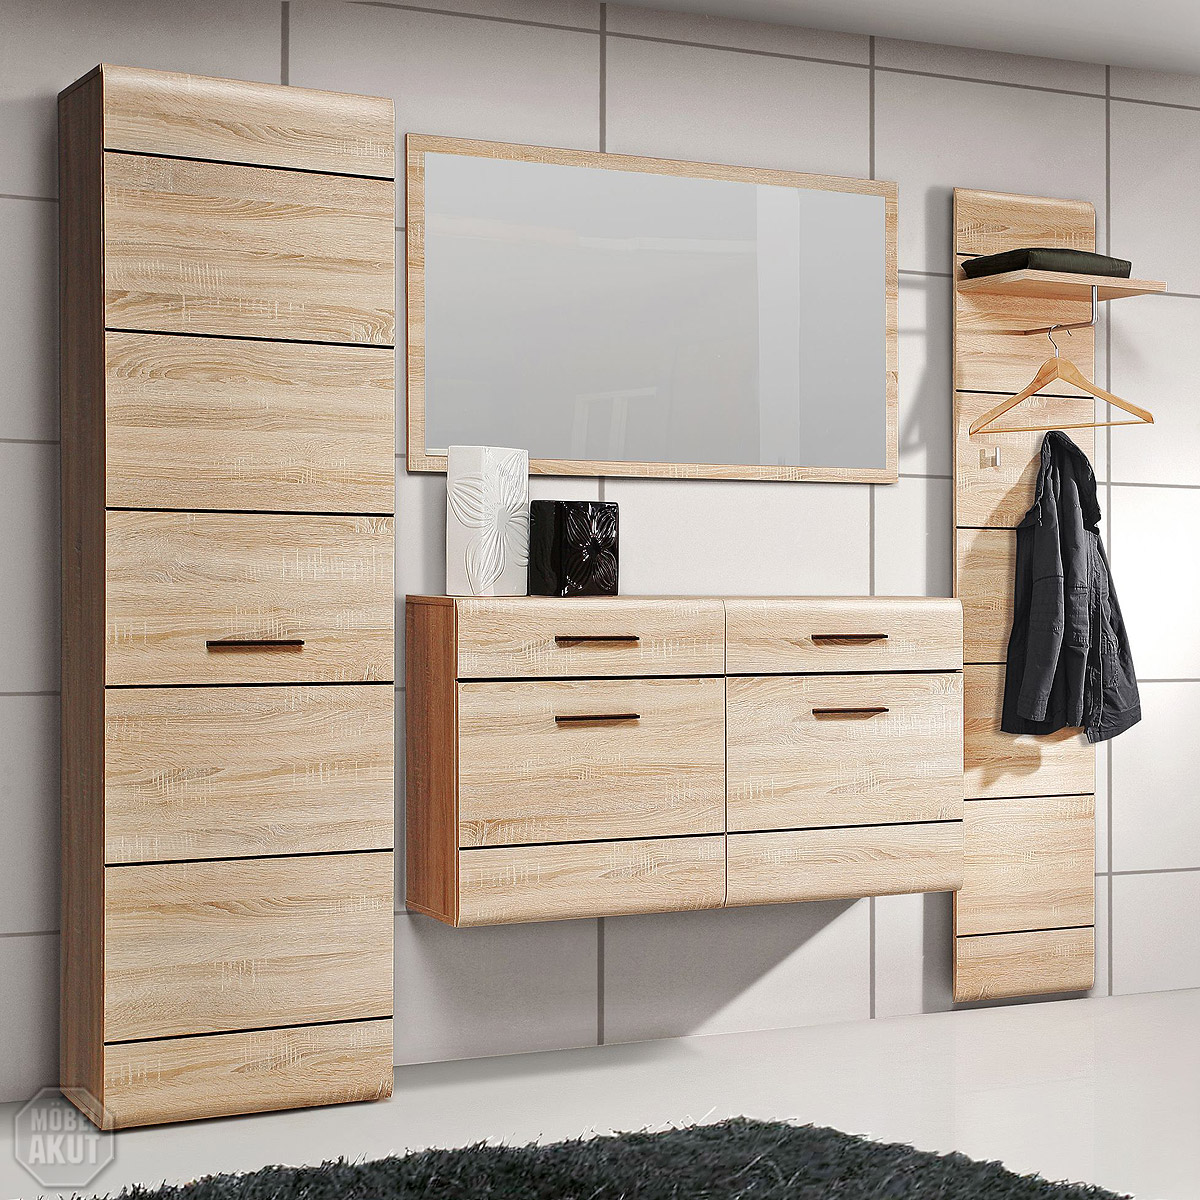 garderobenset 1 combino garderobe schuhschrank spiegel. Black Bedroom Furniture Sets. Home Design Ideas